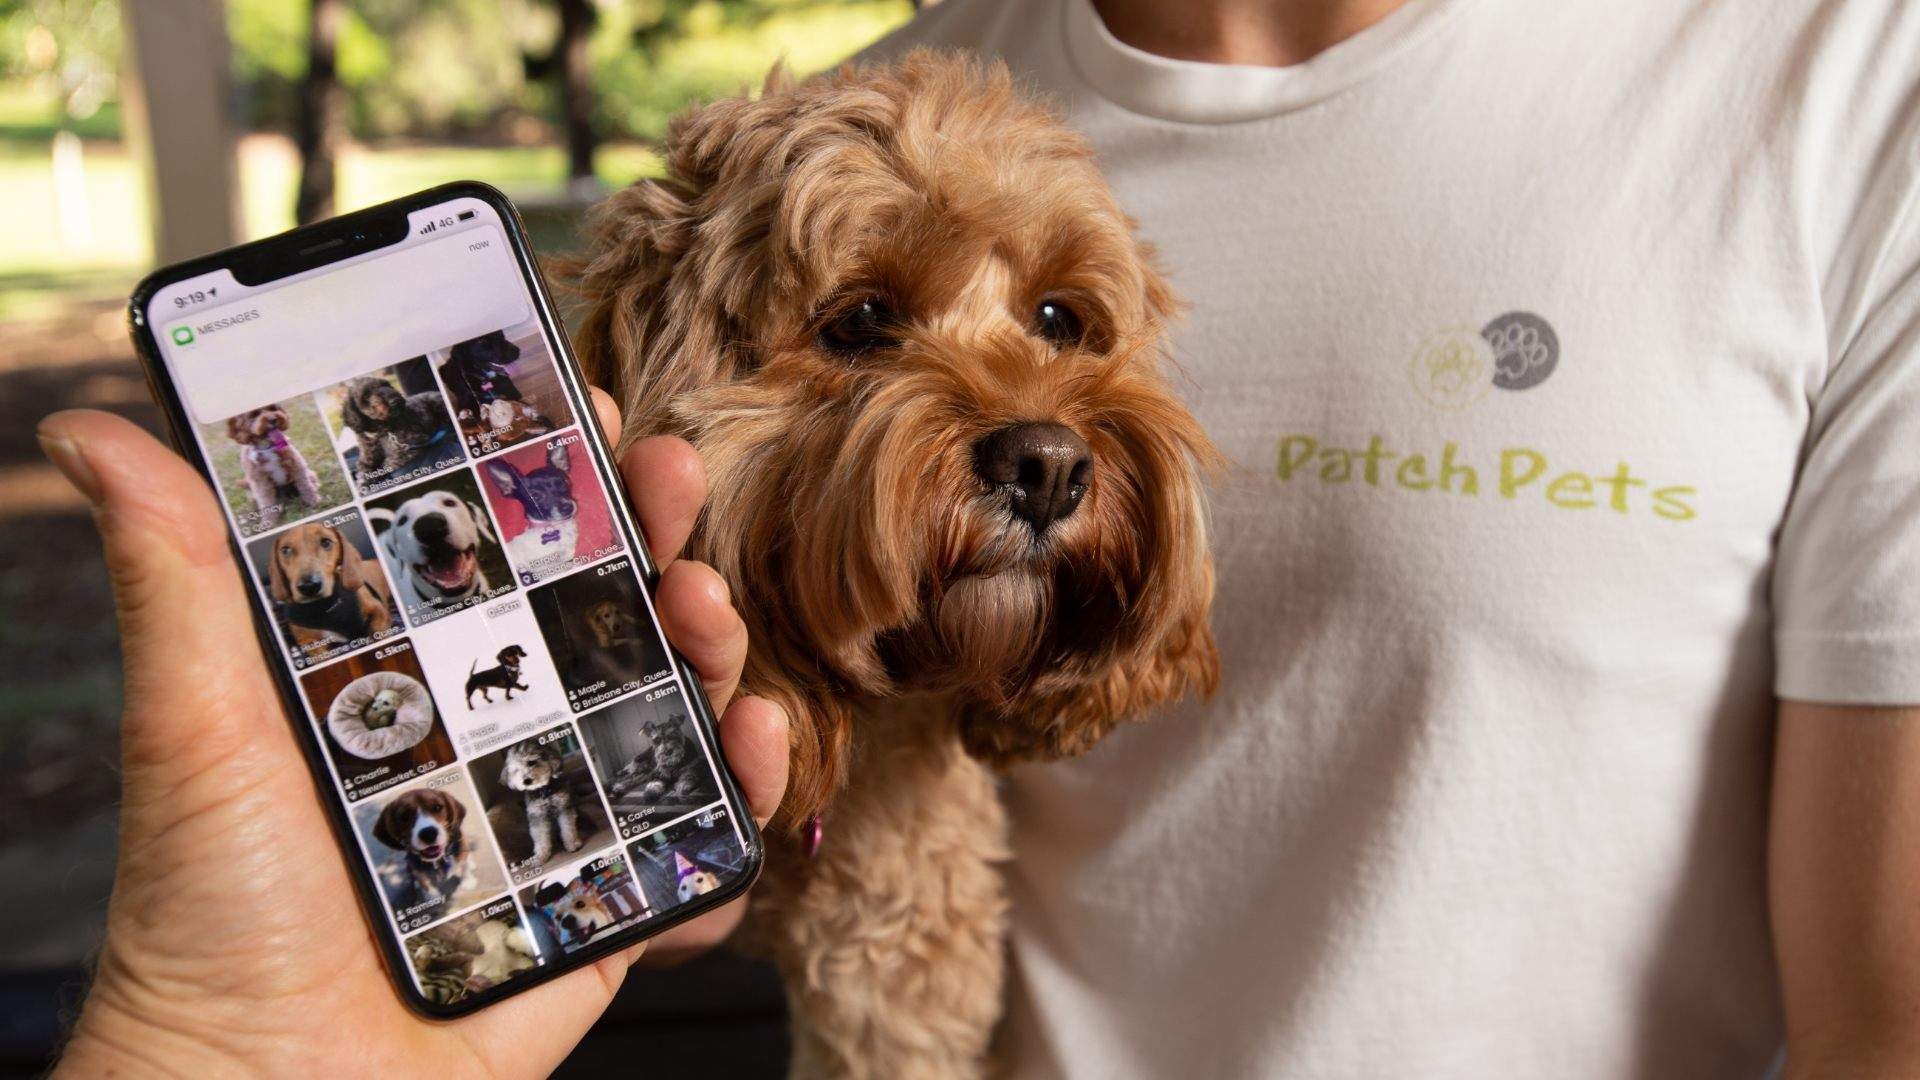 PatchPets Is the New Tinder-Style App That'll Help Your Dog Make Four-Legged Friends